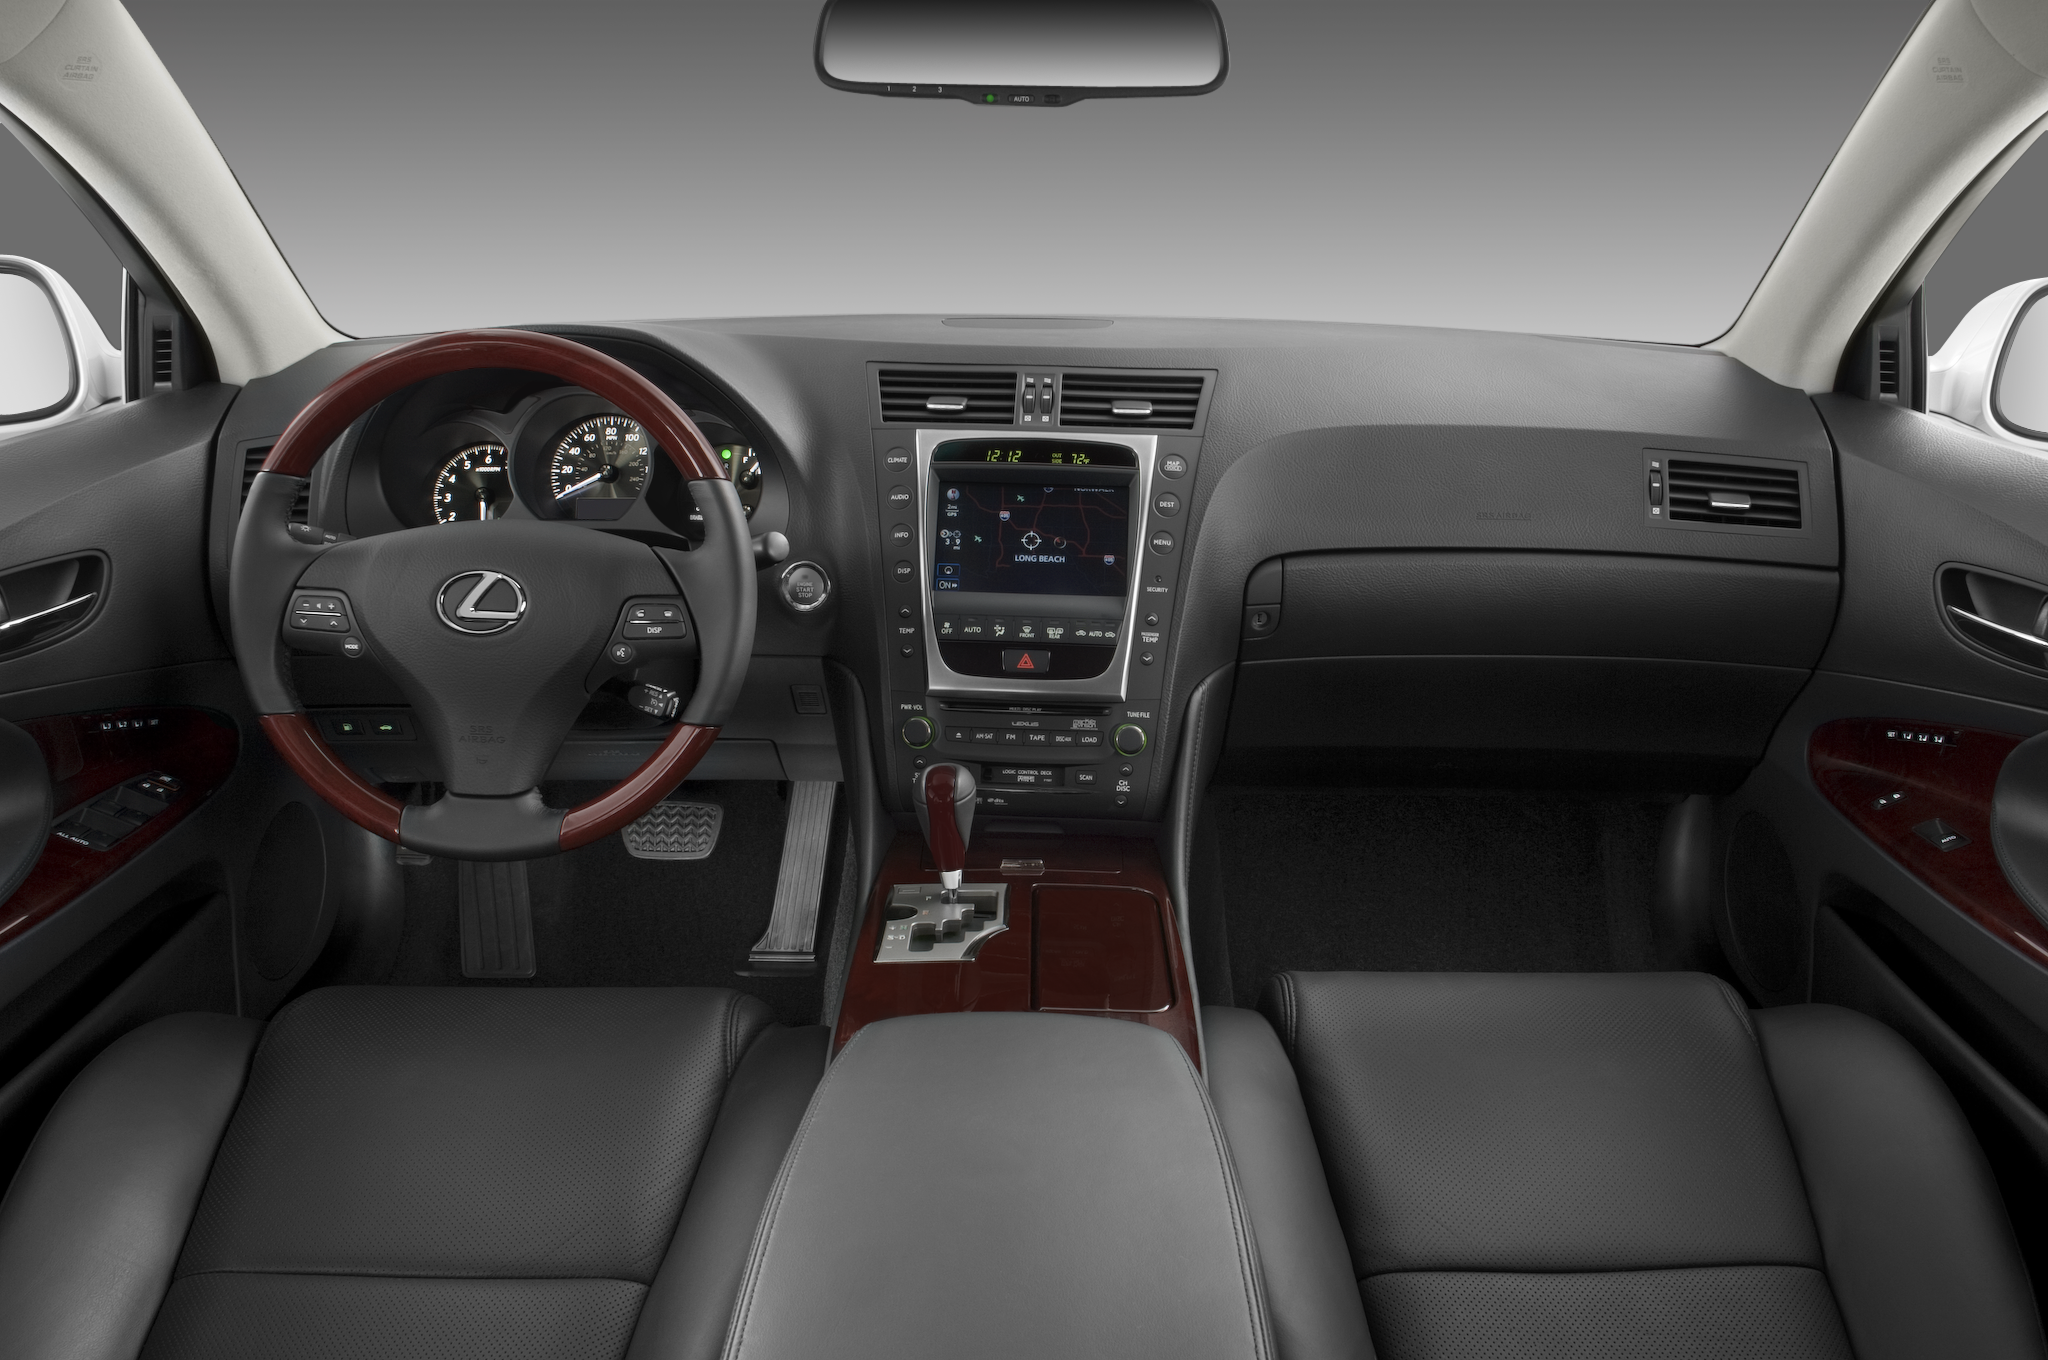 https://st.automobilemag.com/uploads/sites/10/2015/11/2010-lexus-gs-460-sedan-dashboard.png